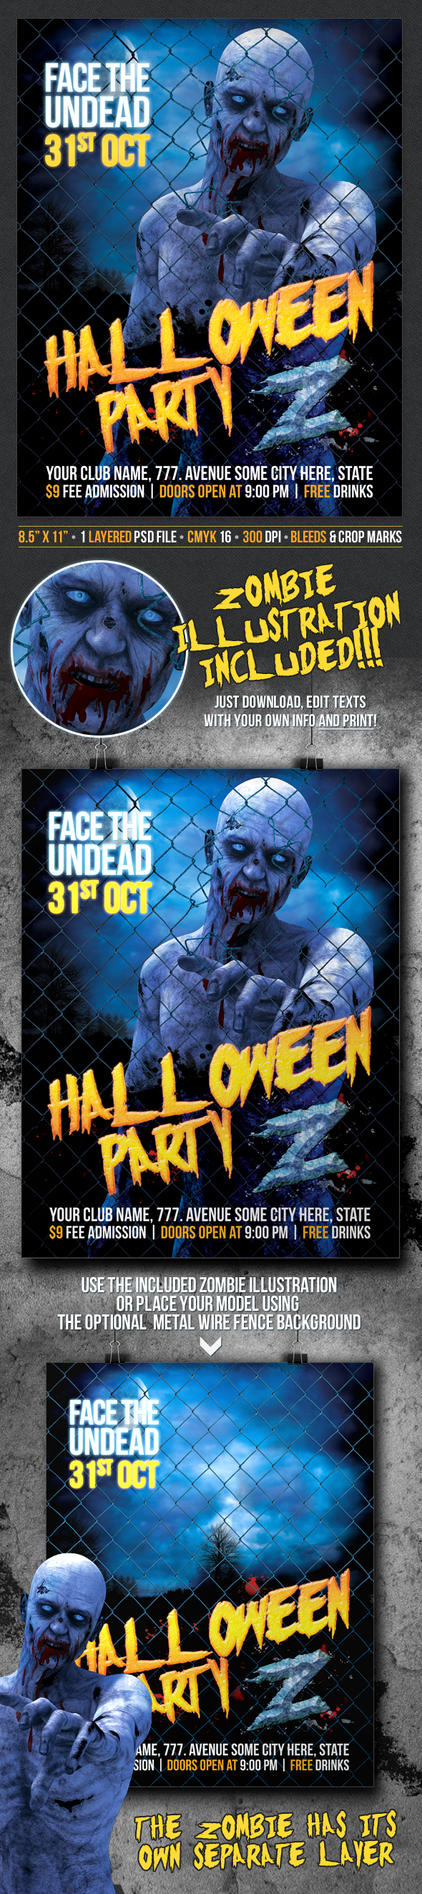 Halloween Party Z Poster / Flyer design template by Doppelgangers